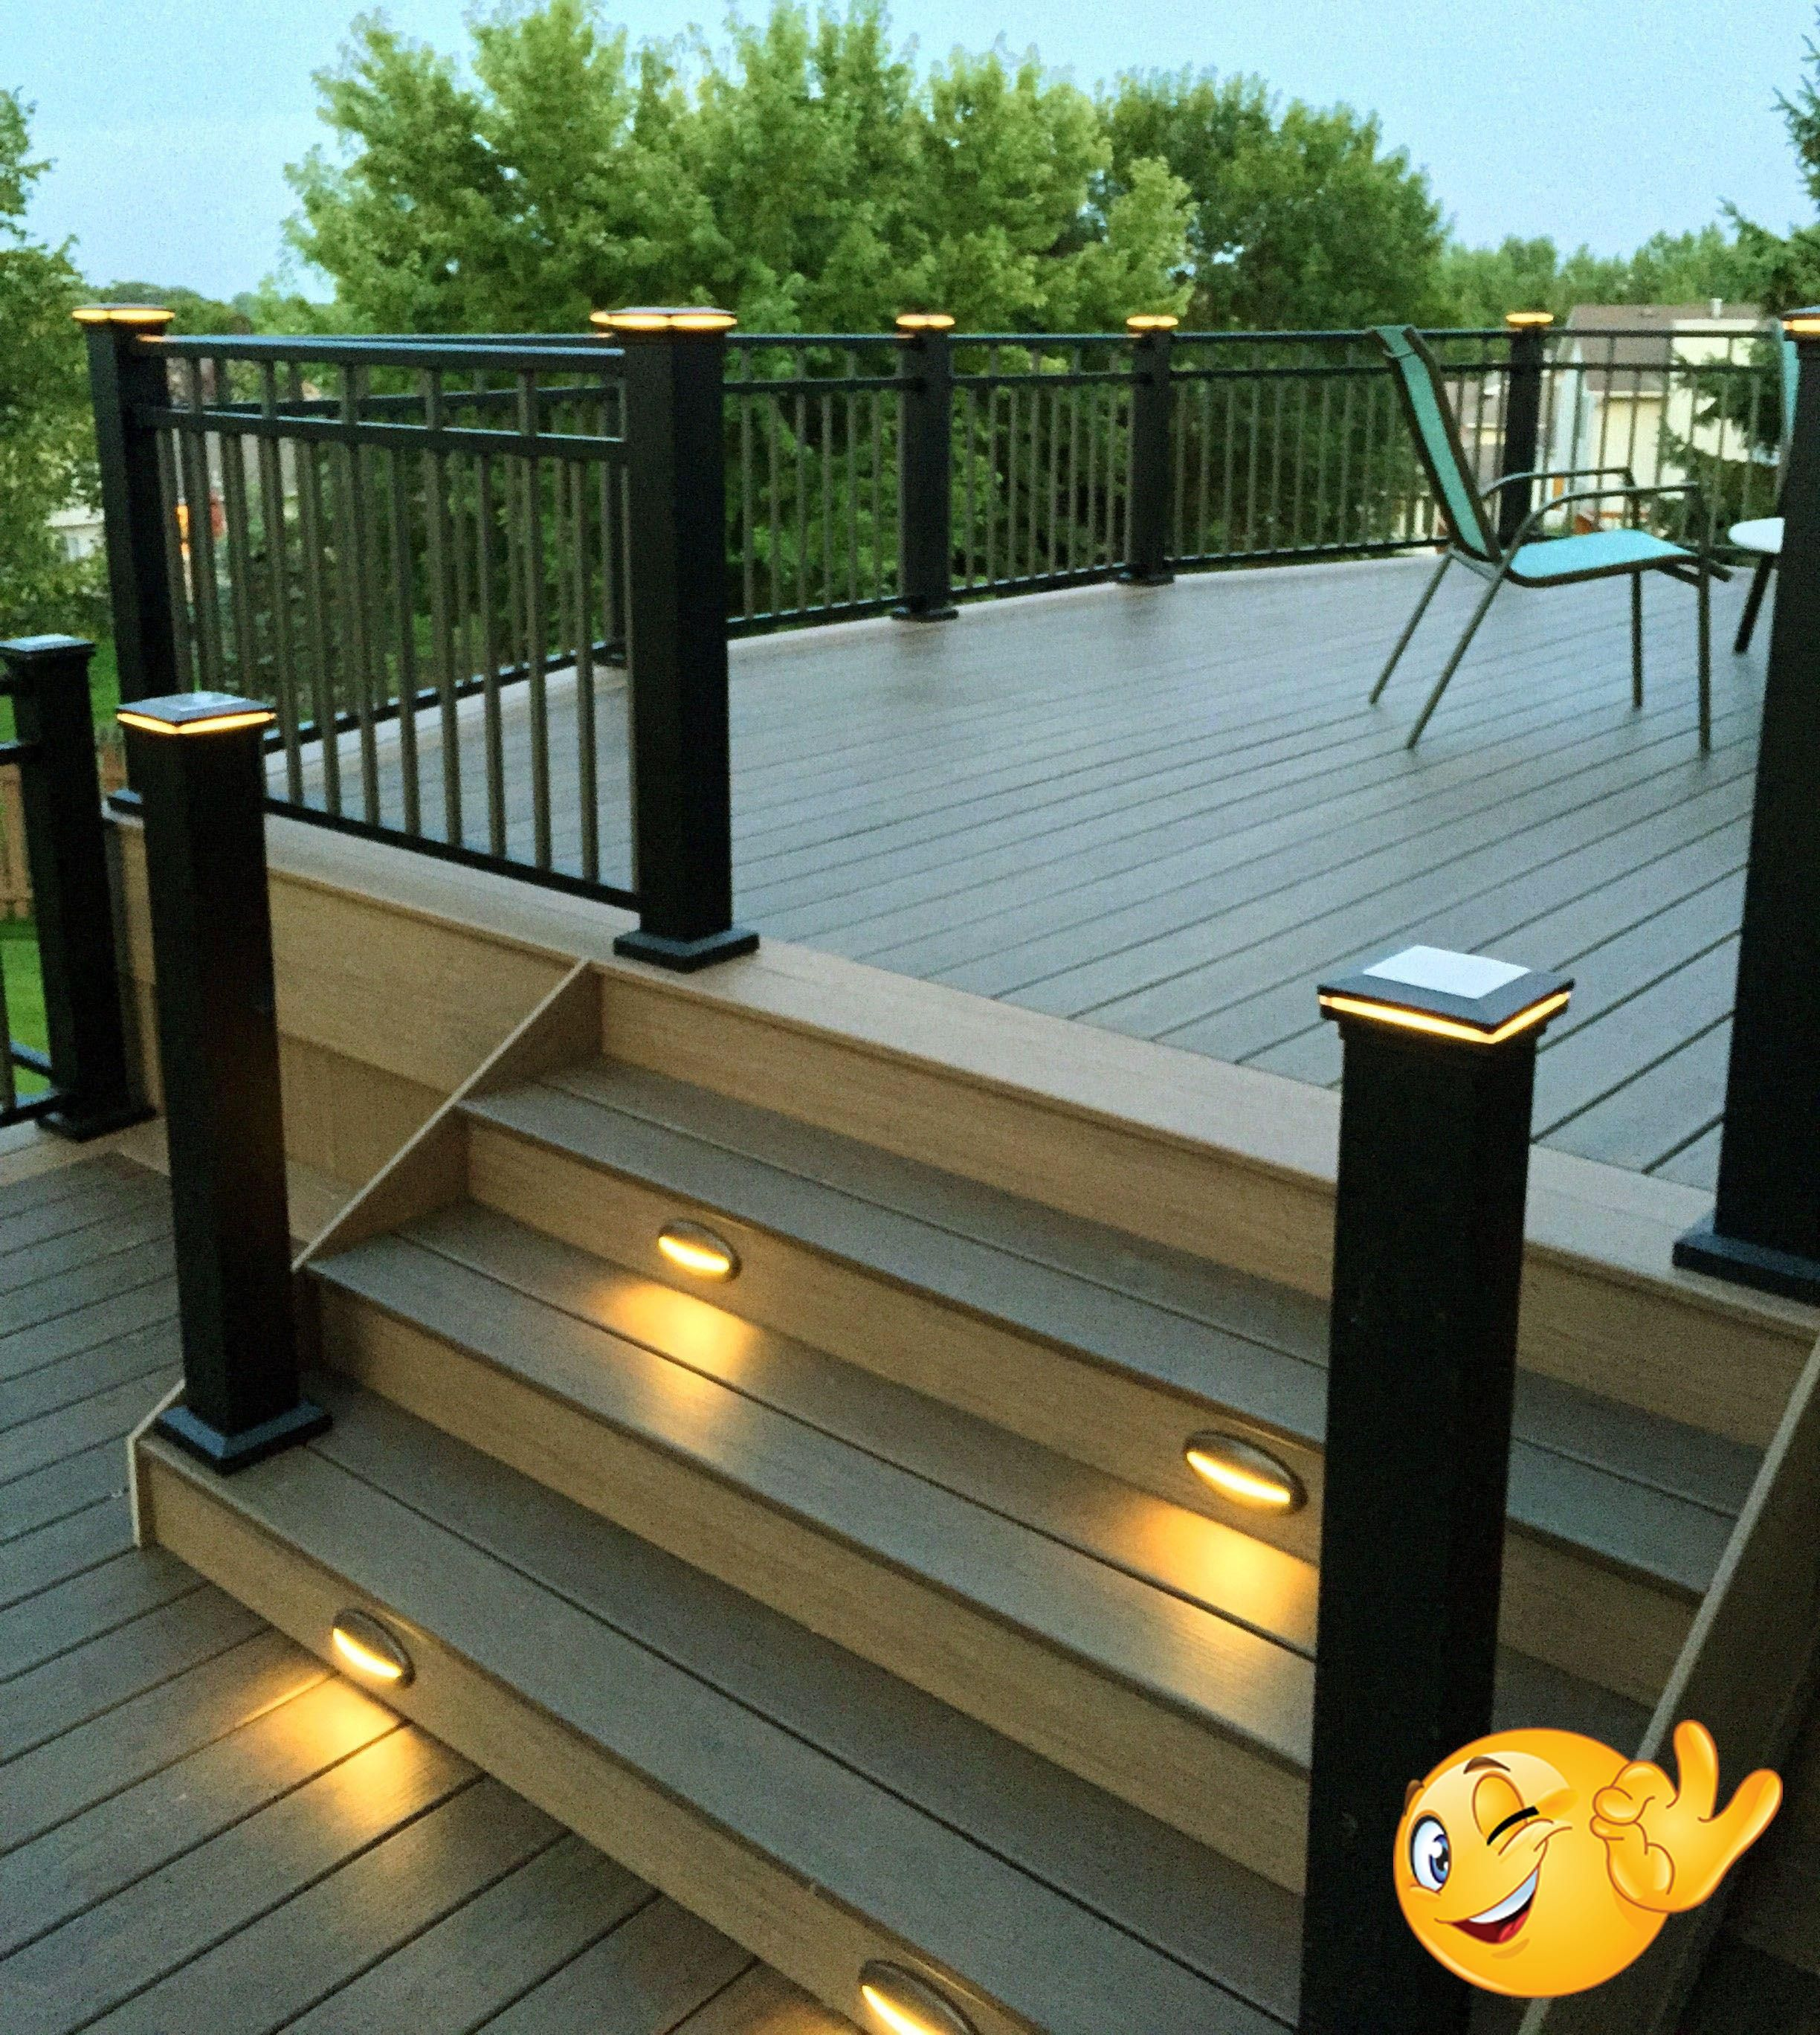 Crazy Deck Lighting Ideas Canada Only In Miral Iva Design N Boost With The Advent Of Solar Powered Led Systems A Simple Kit For 1 Or Multiple Lighting Point In 2020